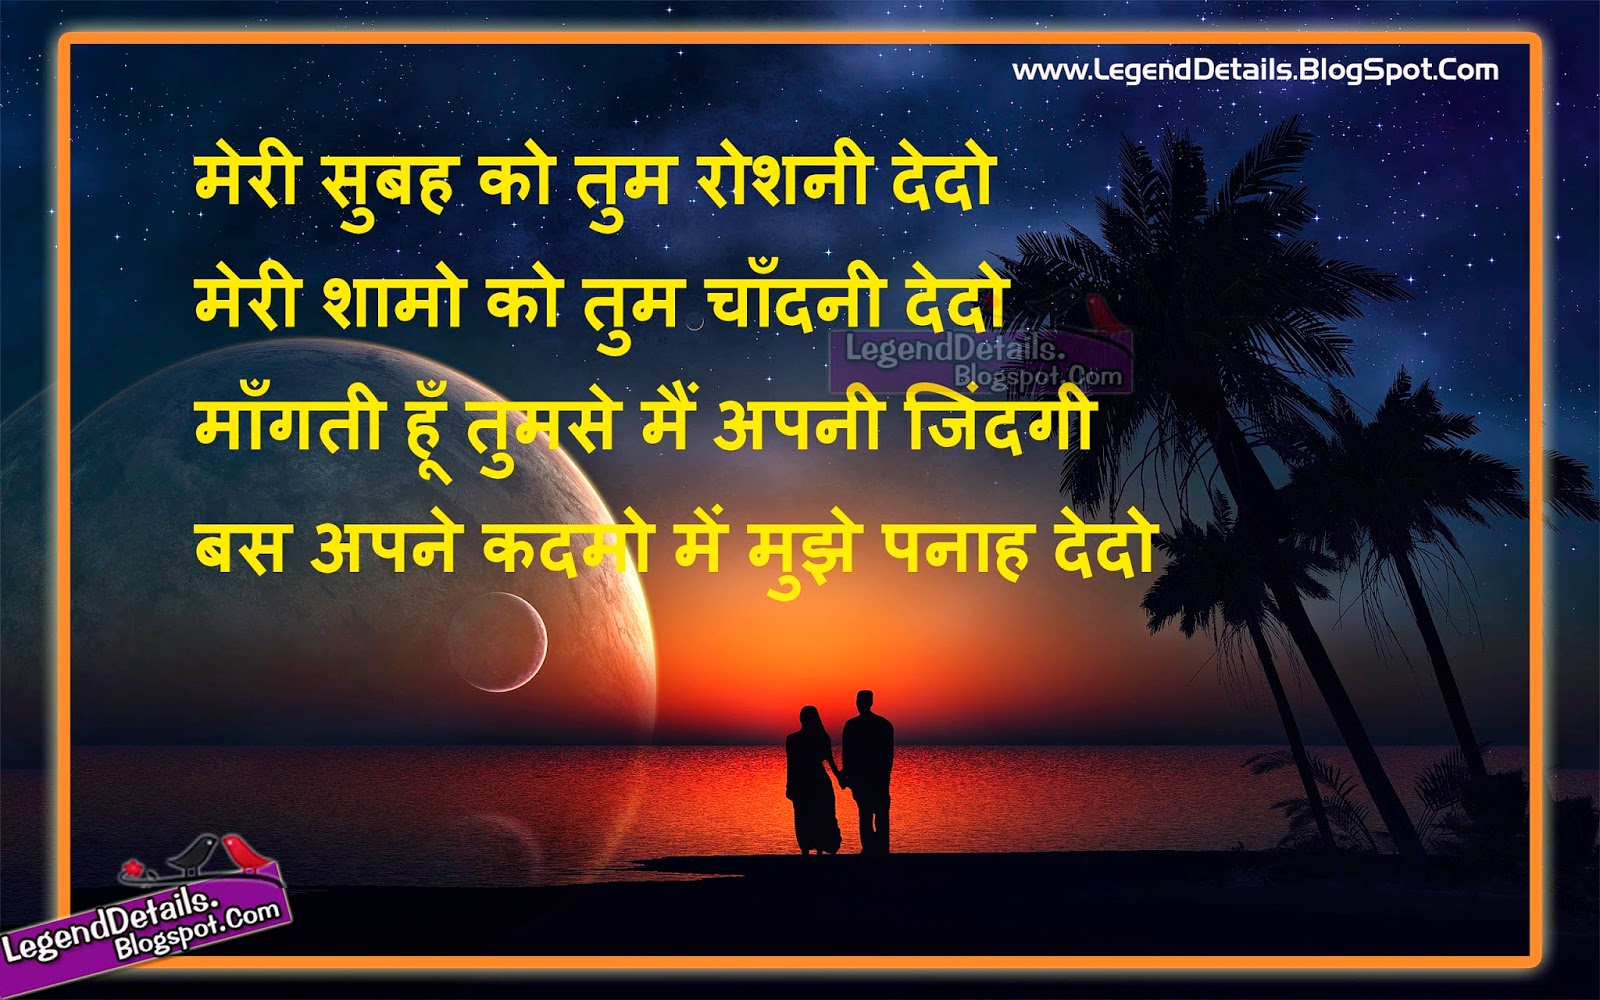 Best Love Quotes For Girlfriend In Hindi : ... girlfriend in hindi font cute love shayari for girlfriend in hindi